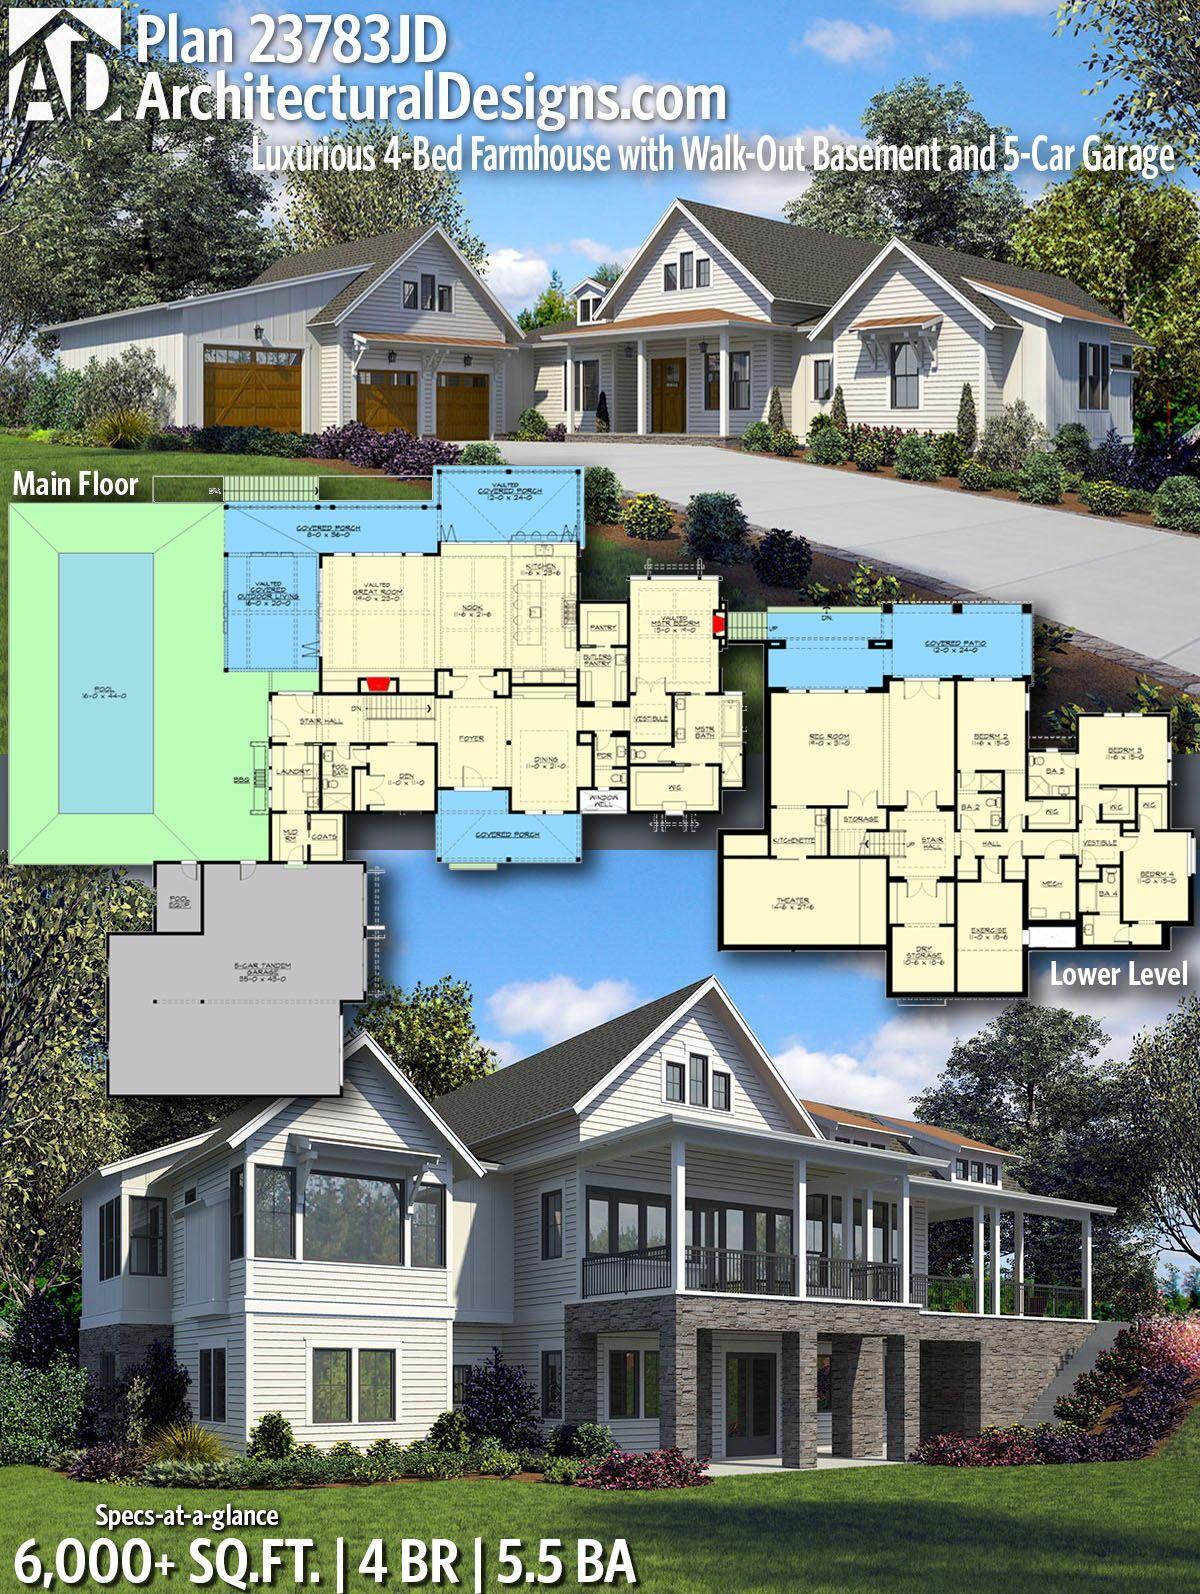 Plan 23783jd Luxurious 4 Bed Farmhouse With Walk Out Basement And 5 Car Garage House Plans House Design 6 Bedroom House Plans